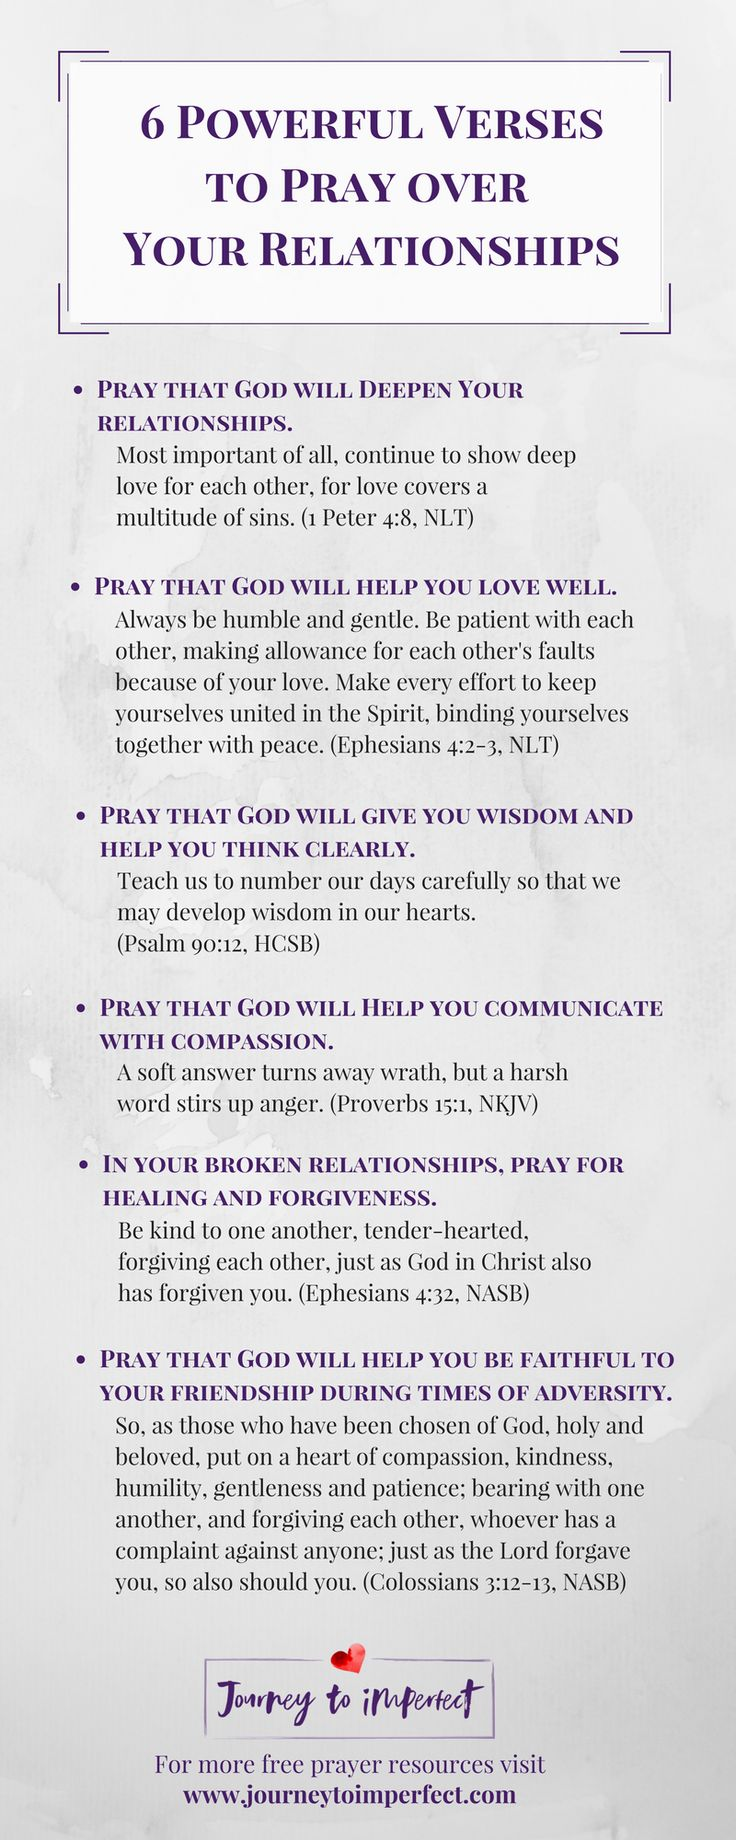 Prayer changes things, especially when it comes to relationships! Pray these powerful verses over your relationships for lasting impact, healing, and renewal from a God who cares!  via @JrnyToImperfect